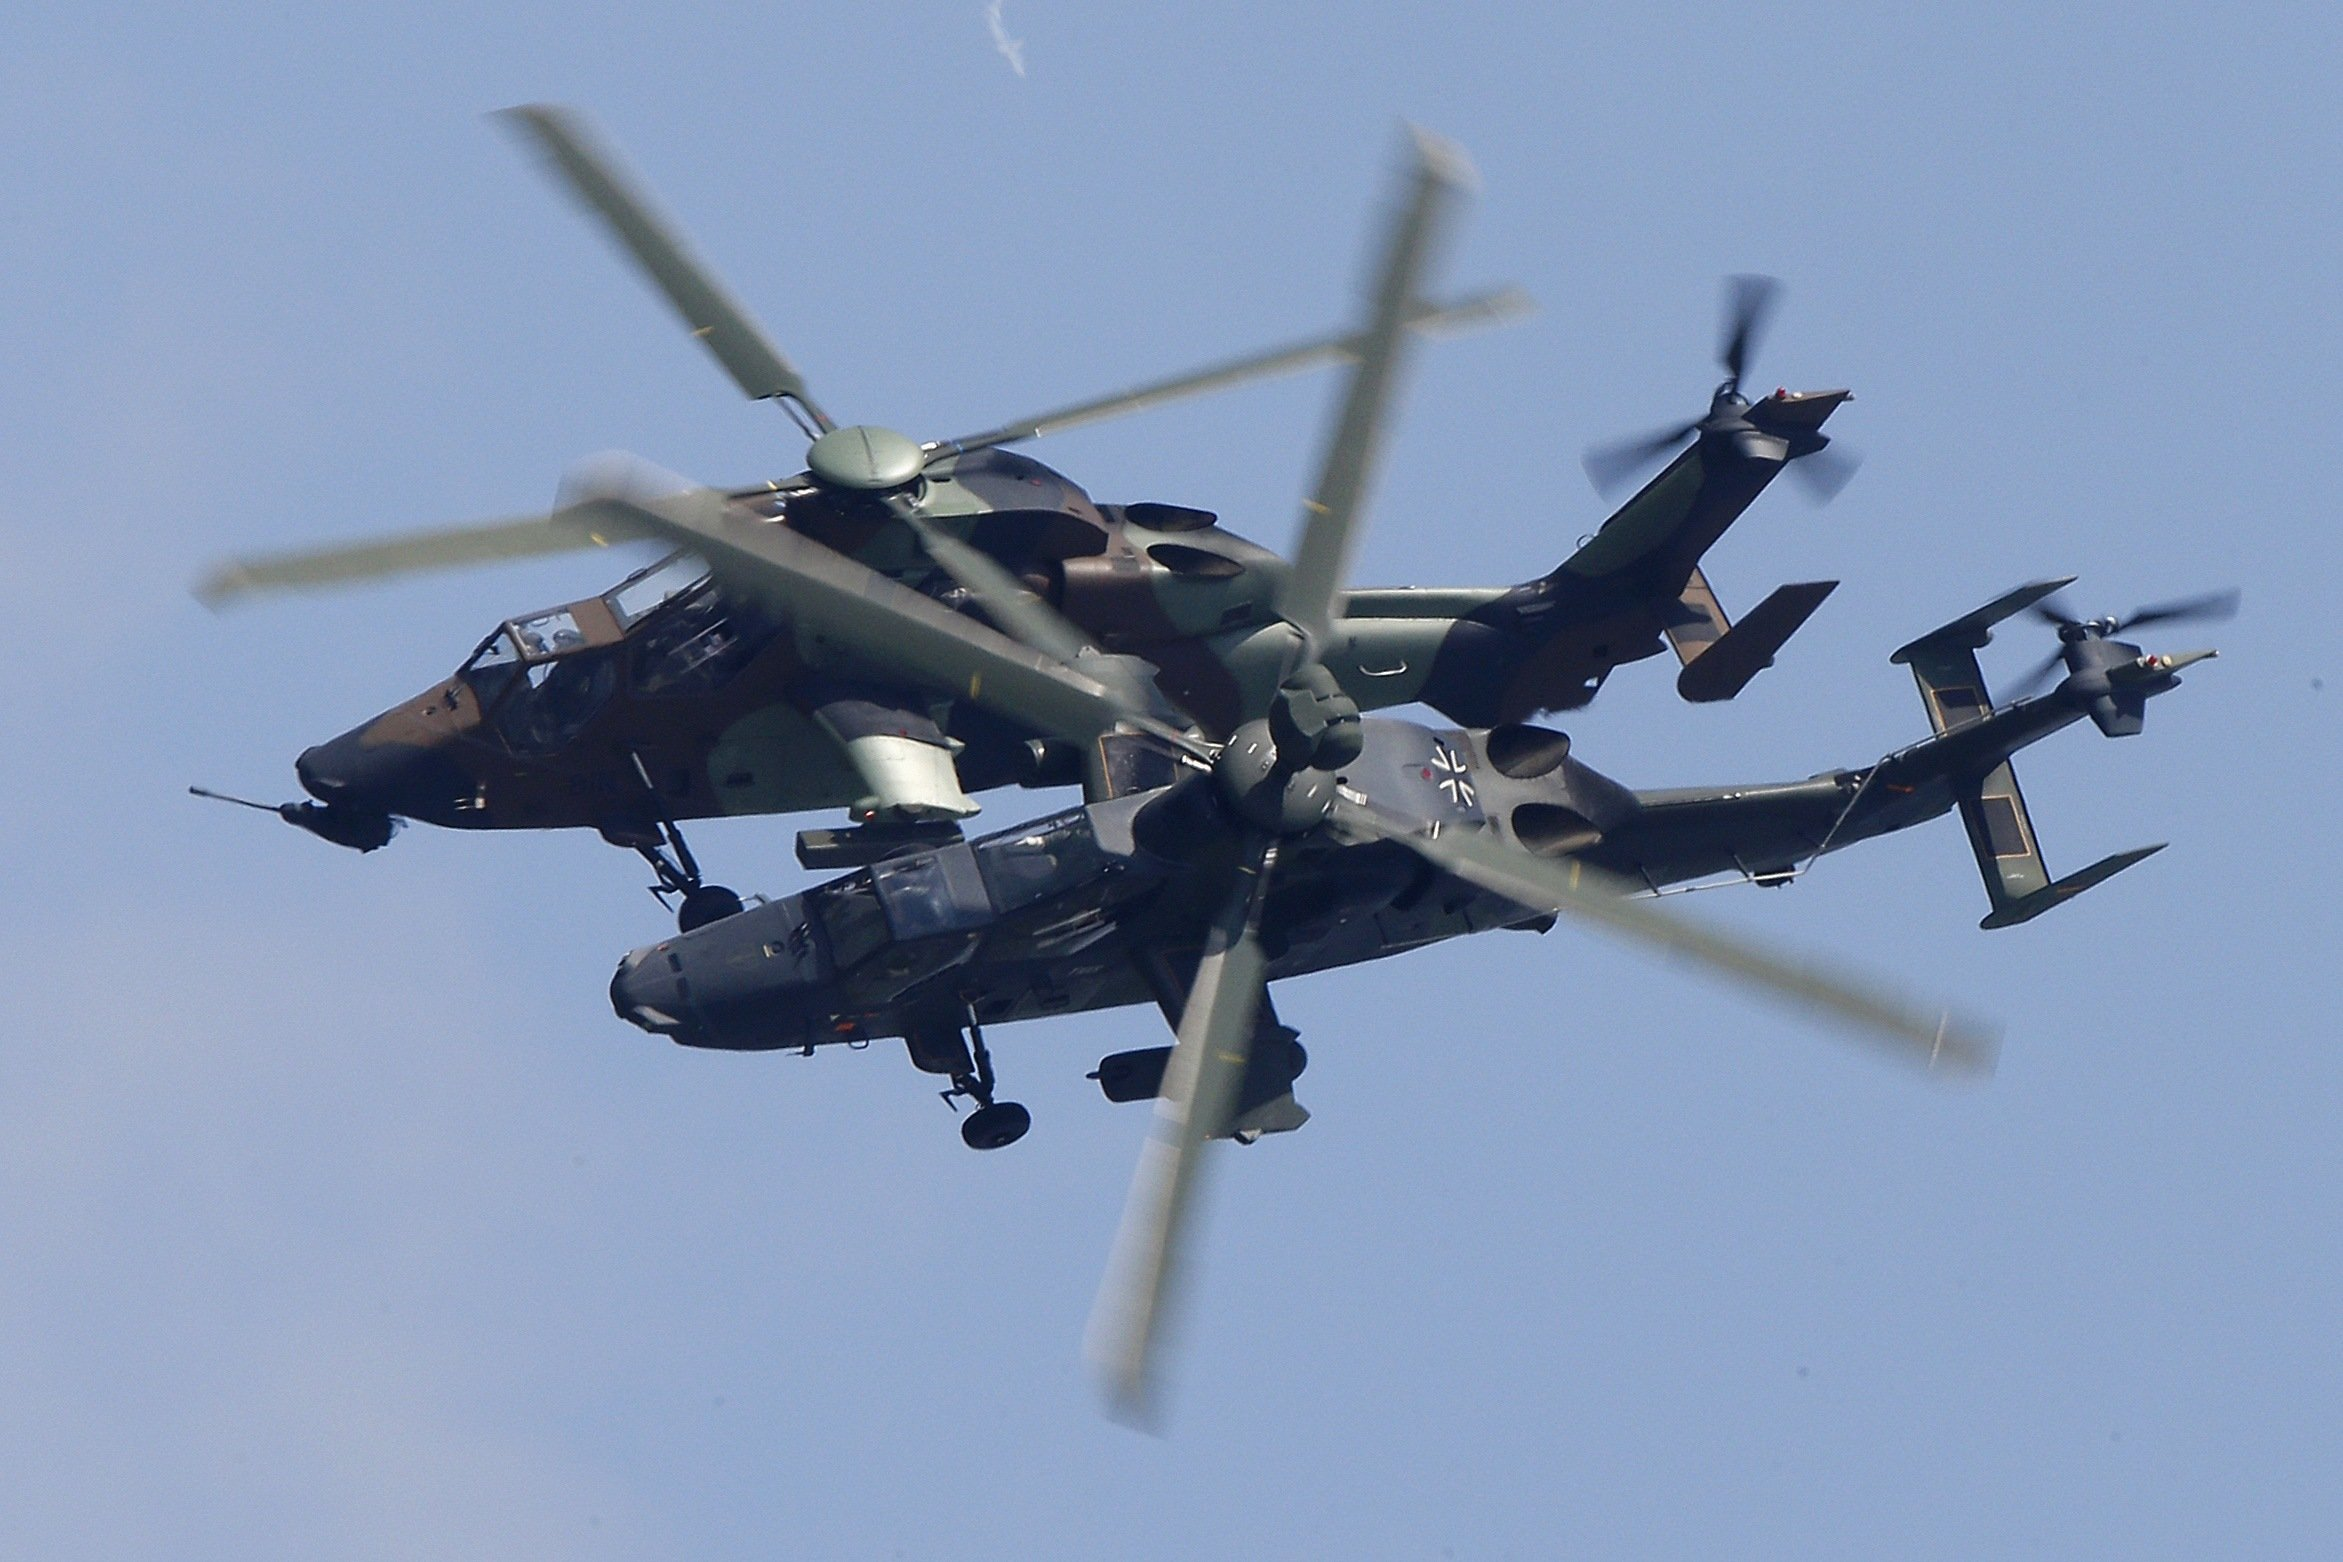 eurocopter tiger attack helicopter aircraft 39 wallpaper 2343x1562 344819 wallpaperup. Black Bedroom Furniture Sets. Home Design Ideas